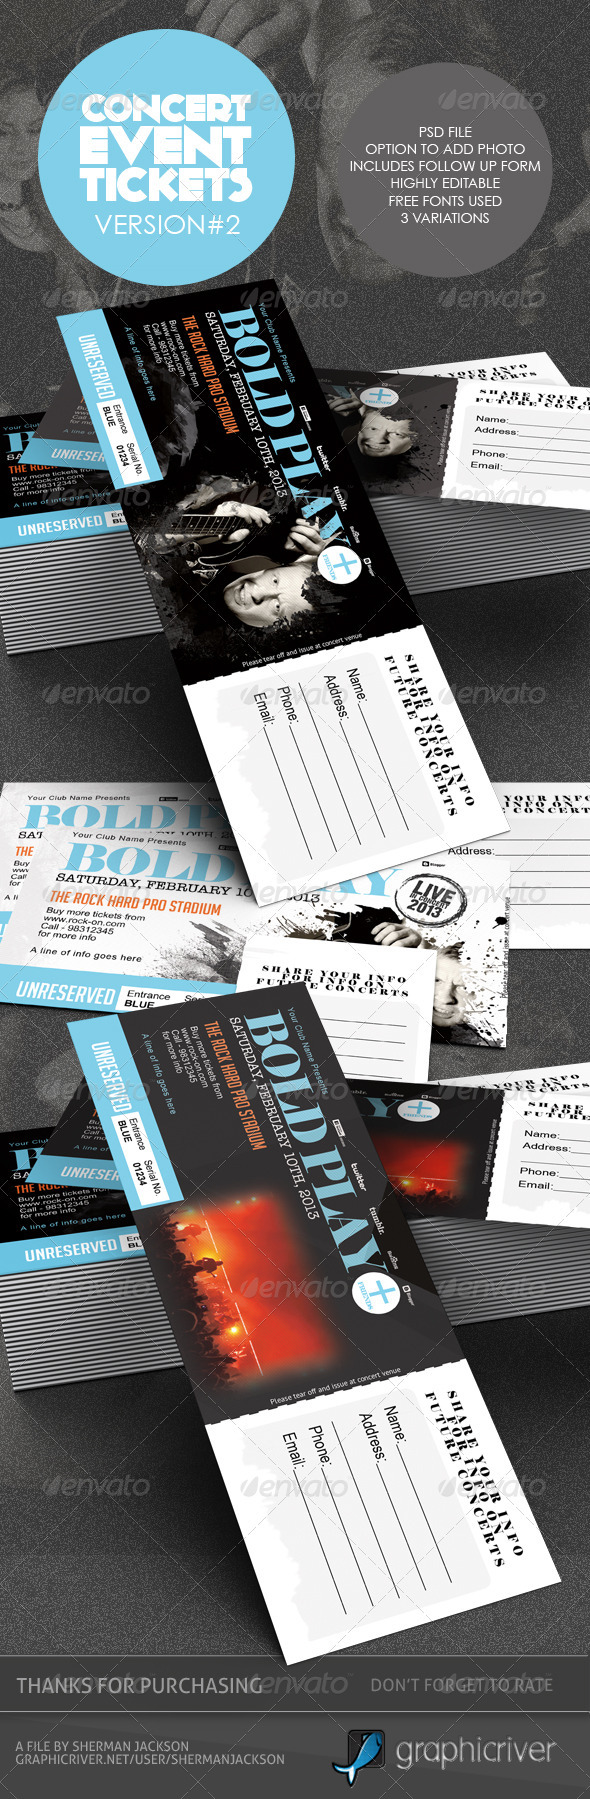 concert event tickets passes version 2 graphicriver. Black Bedroom Furniture Sets. Home Design Ideas